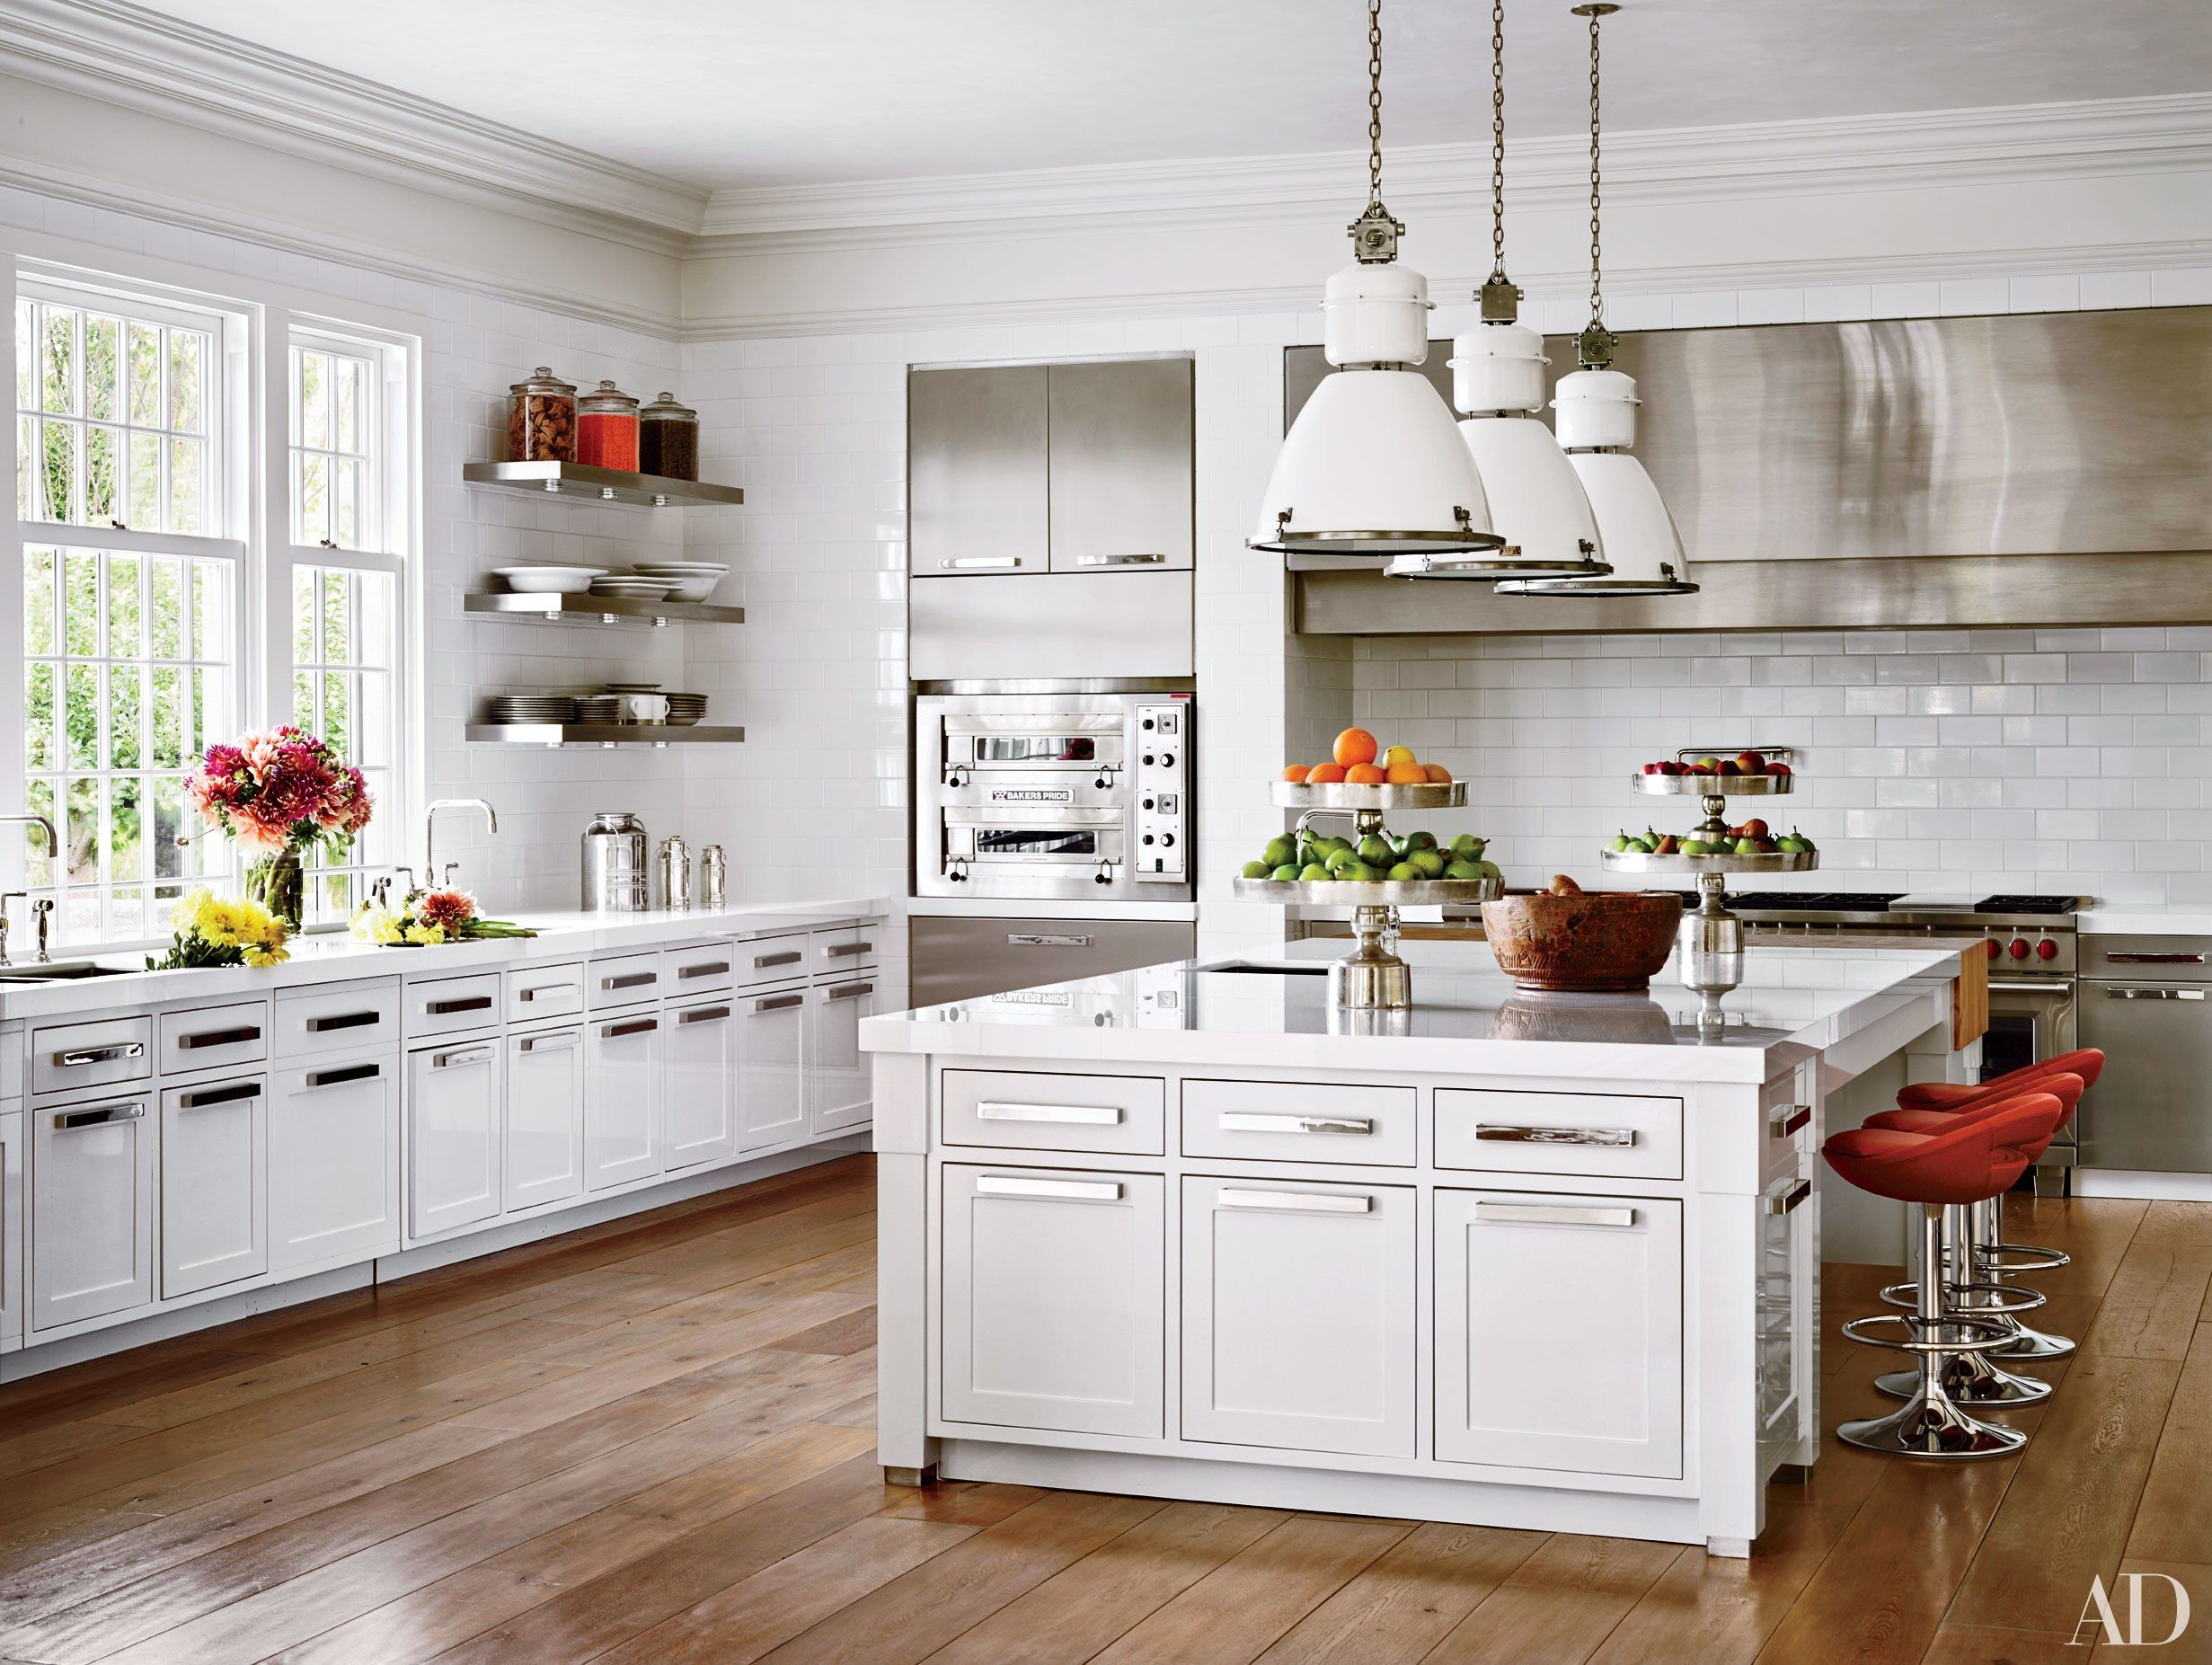 29 Celebrity Kitchens with Incredible Style | Celebrity kitchens ...